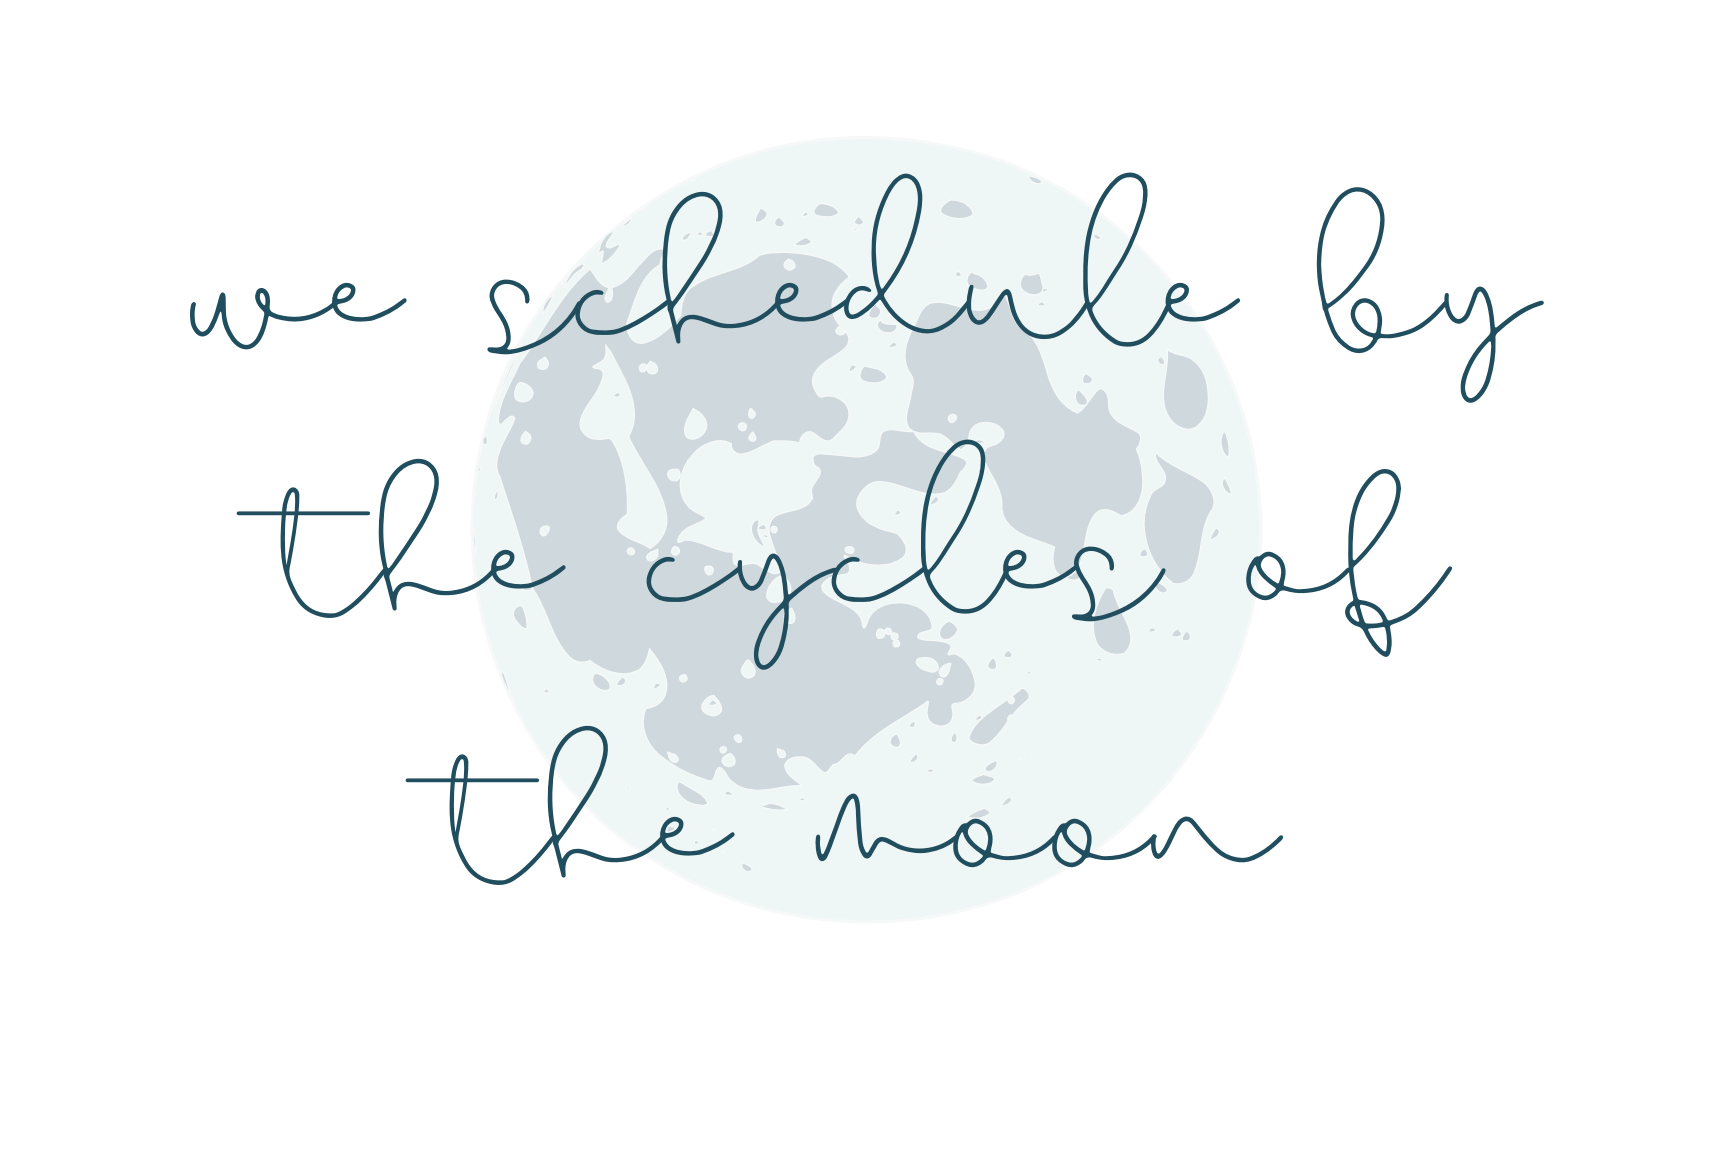 schedule by the cycles of the moon